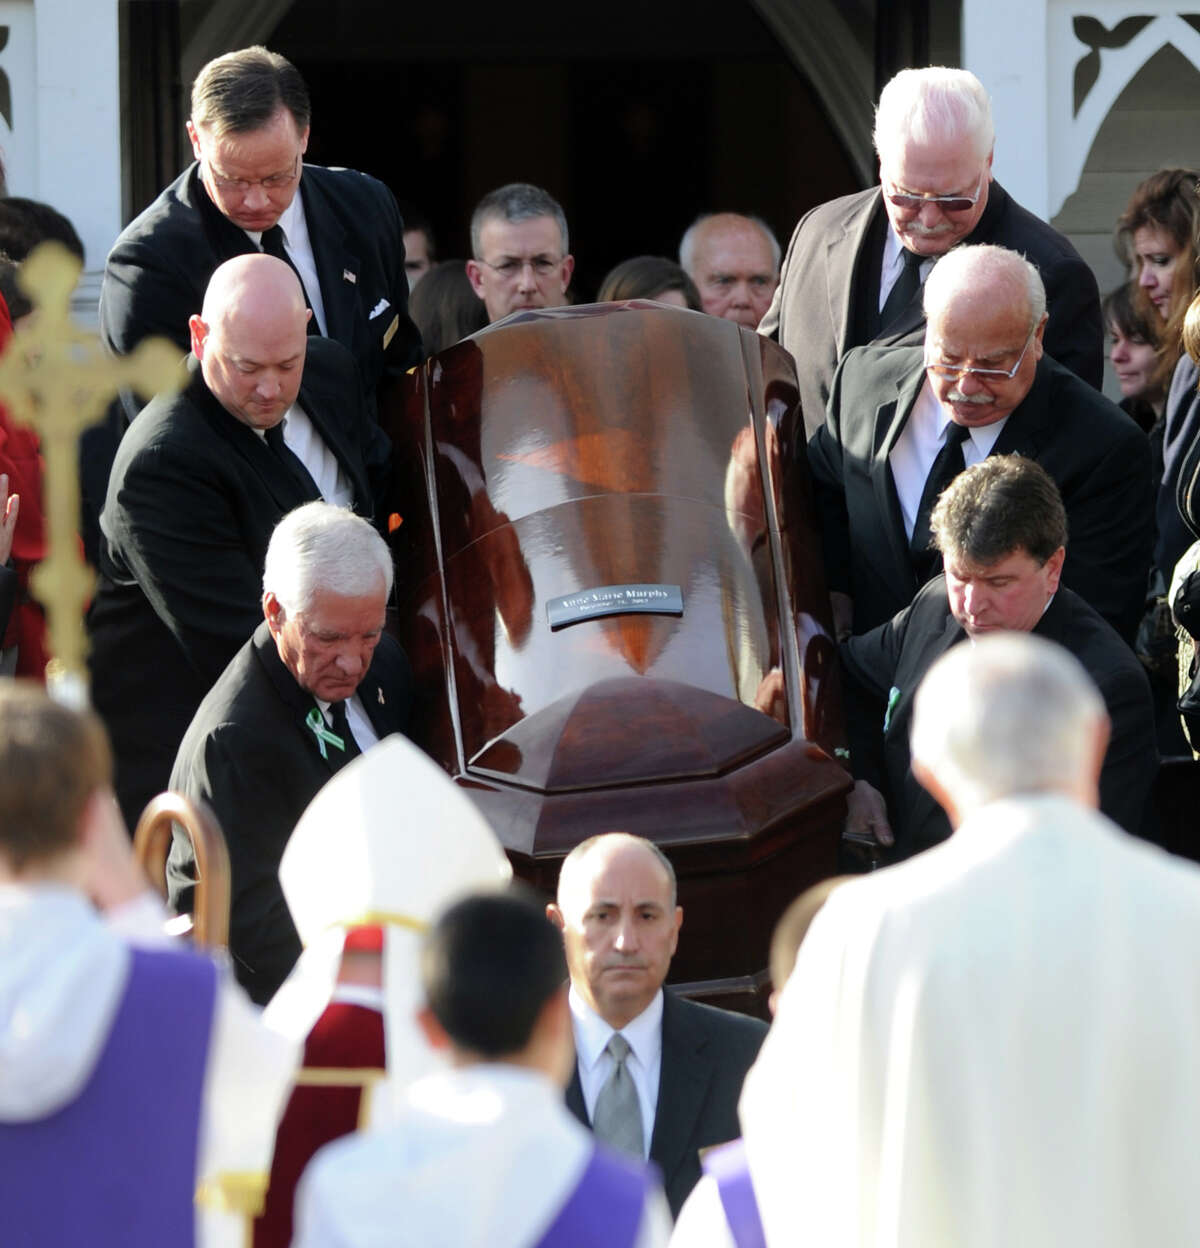 Pallbearers carry Anne Marie Murphy's casket from St. Mary of the Assumption Roman Catholic Church in Katonah, NY, to a hearse after the funeral mass for the Sandy Hook Elementary School Special Education teacher on Thursday, December 20, 2012.